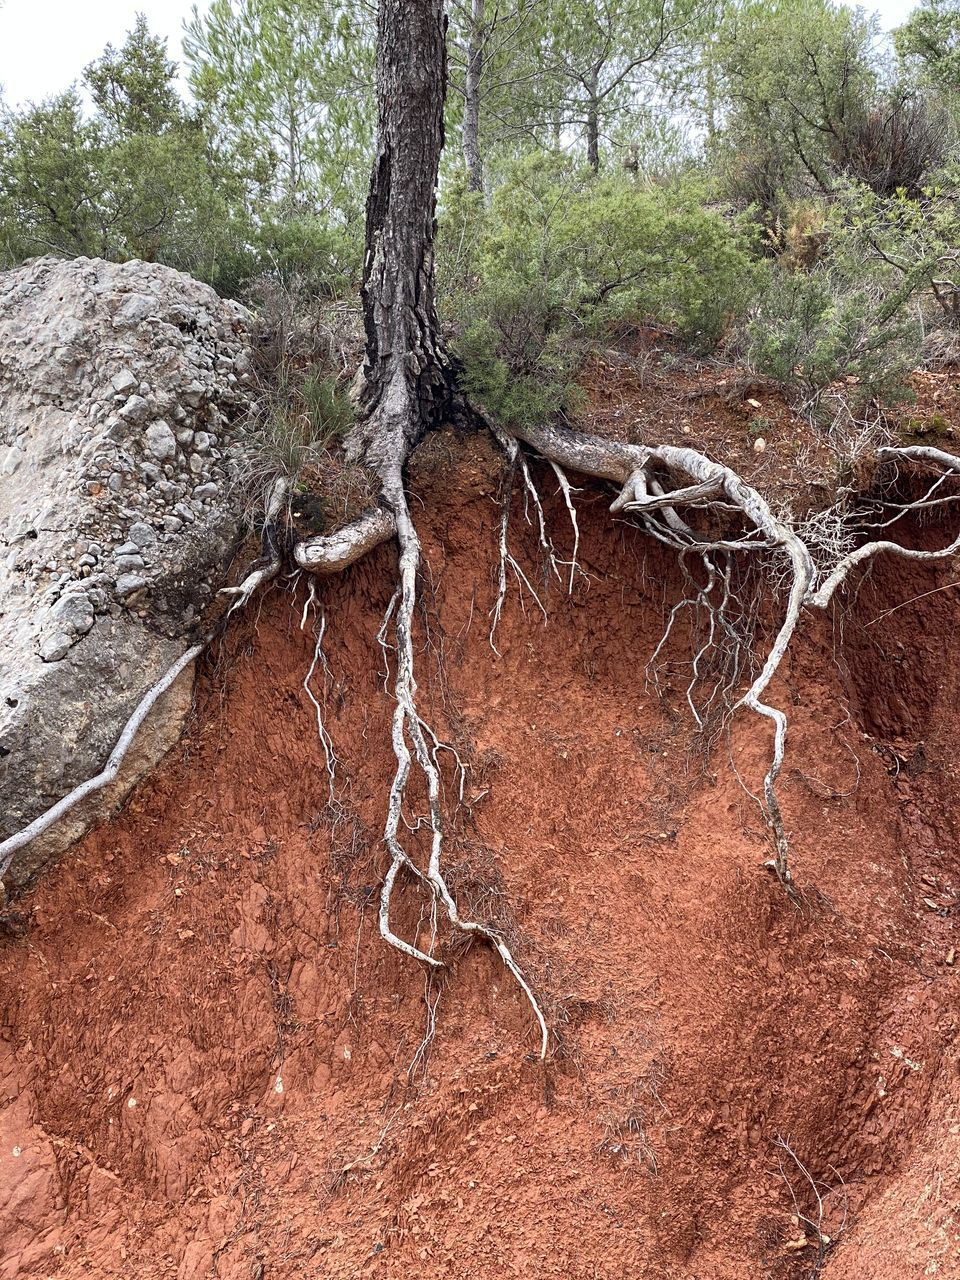 tree, plant, land, nature, no people, day, forest, rock, root, outdoors, solid, rock - object, tranquility, environment, beauty in nature, branch, tree trunk, non-urban scene, water, trunk